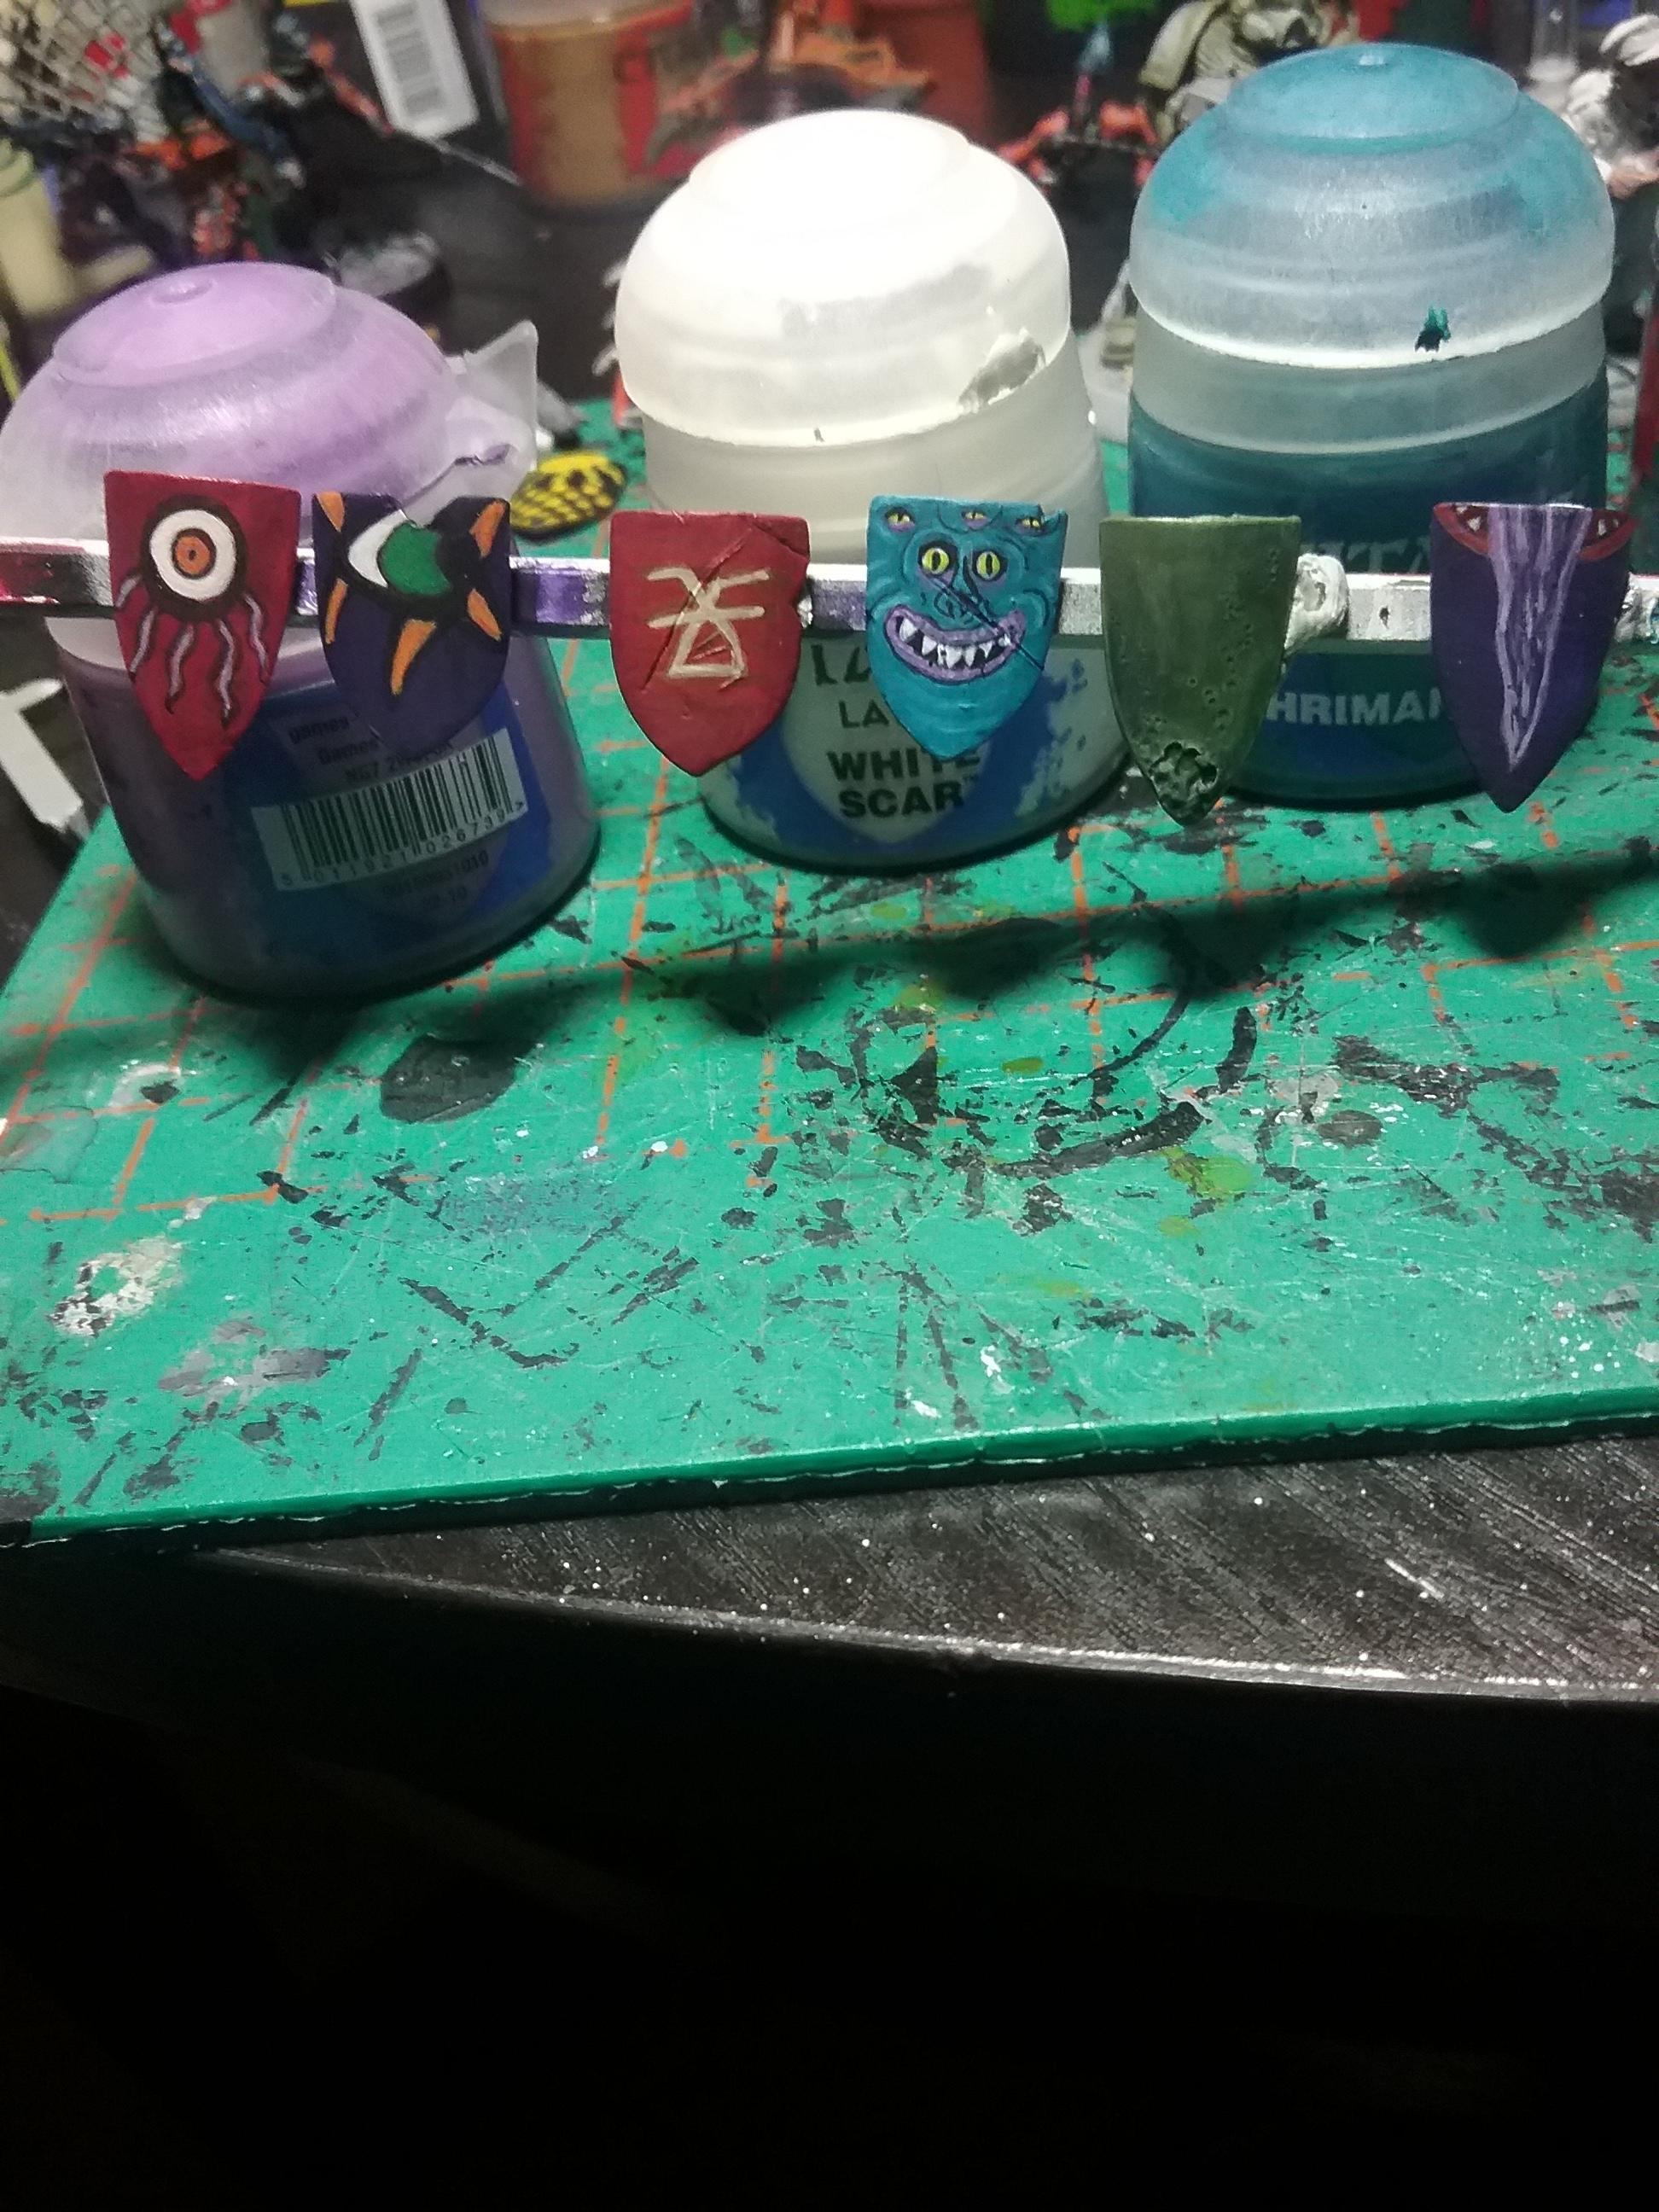 Freehand, Oldhammer, Shields